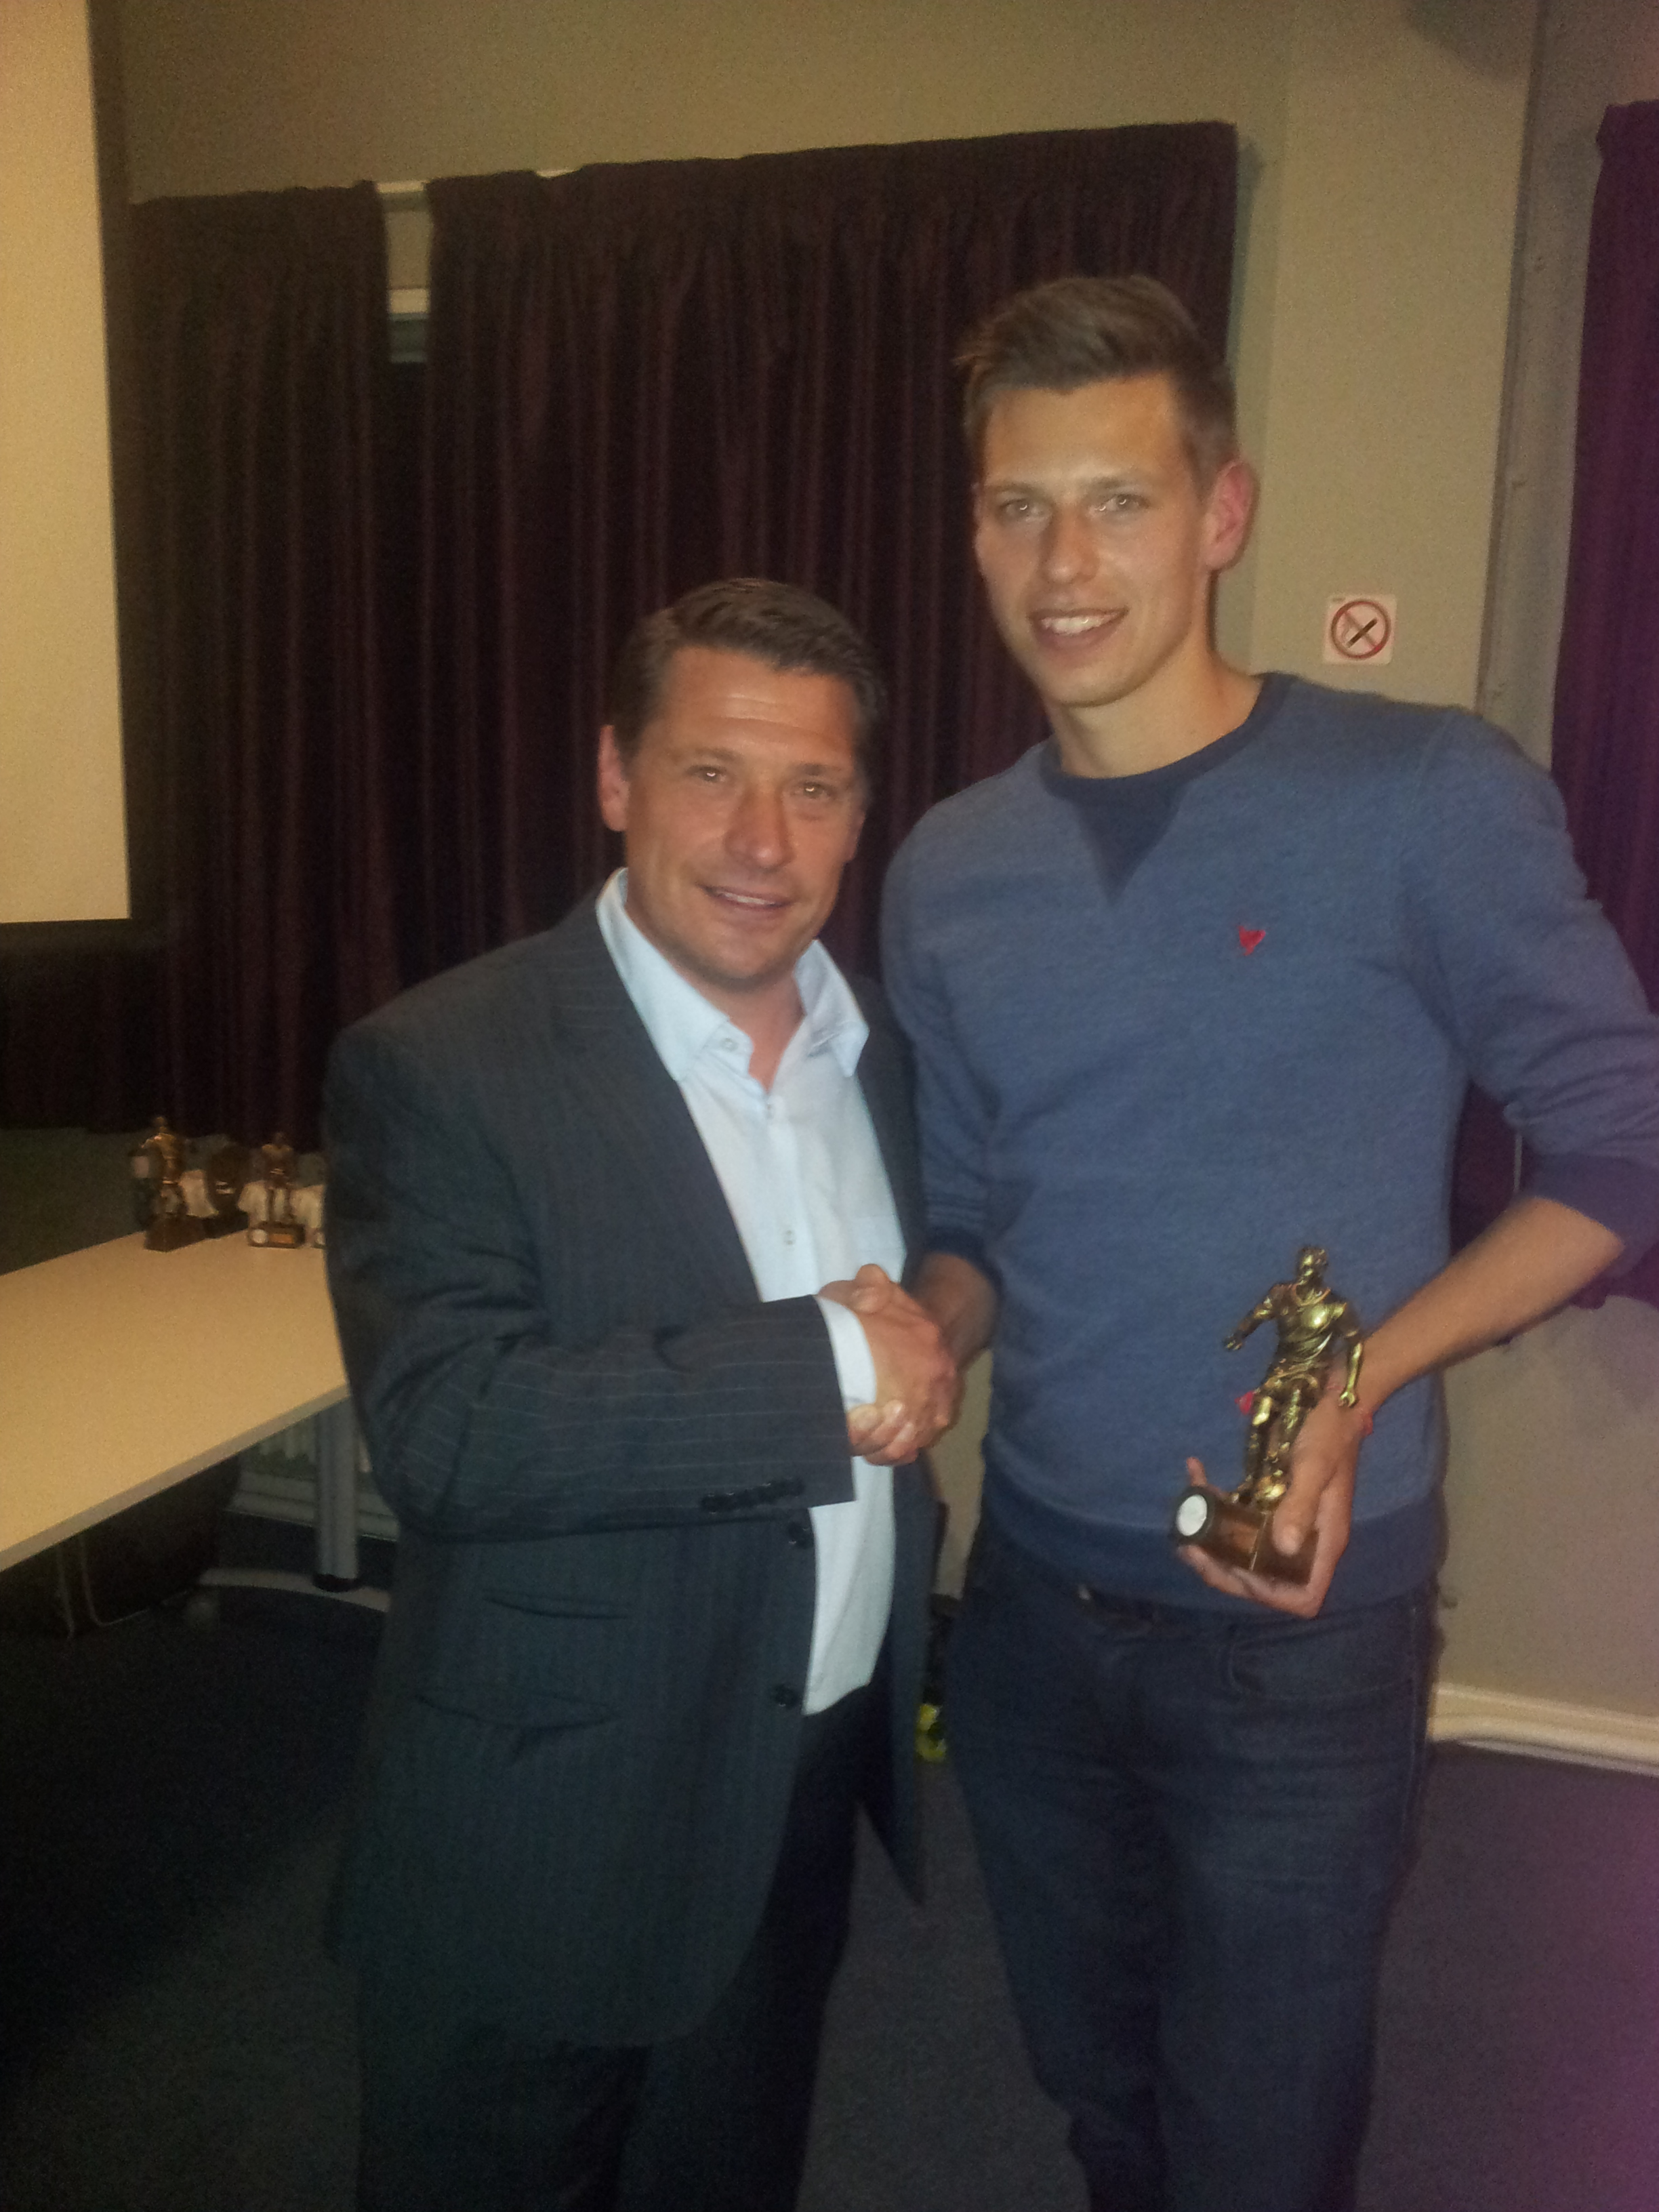 James Cree - 1st Team POTY